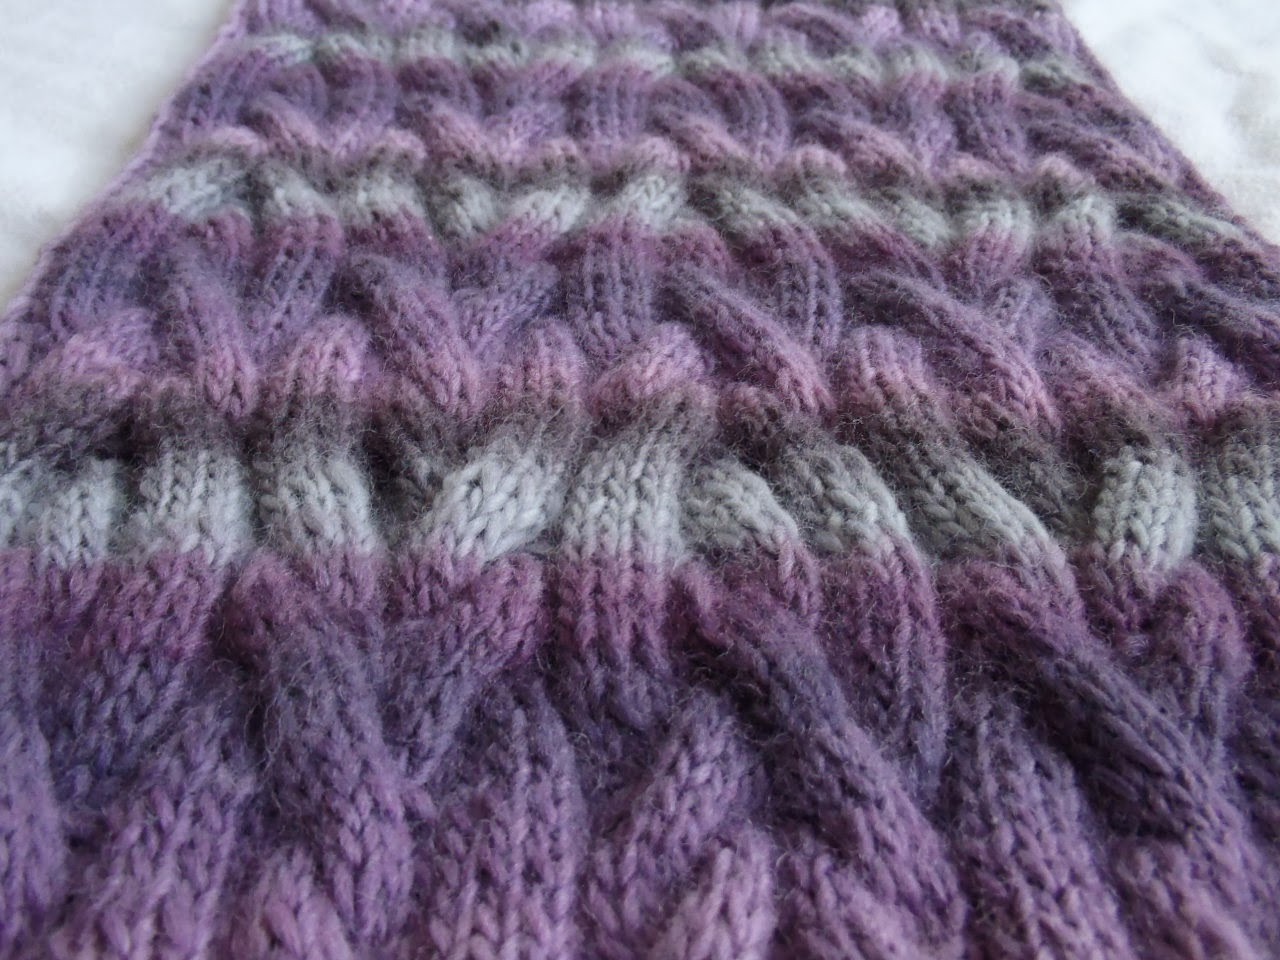 Stanas Critters Etc.: Knitting Pattern for Ripple Shawl